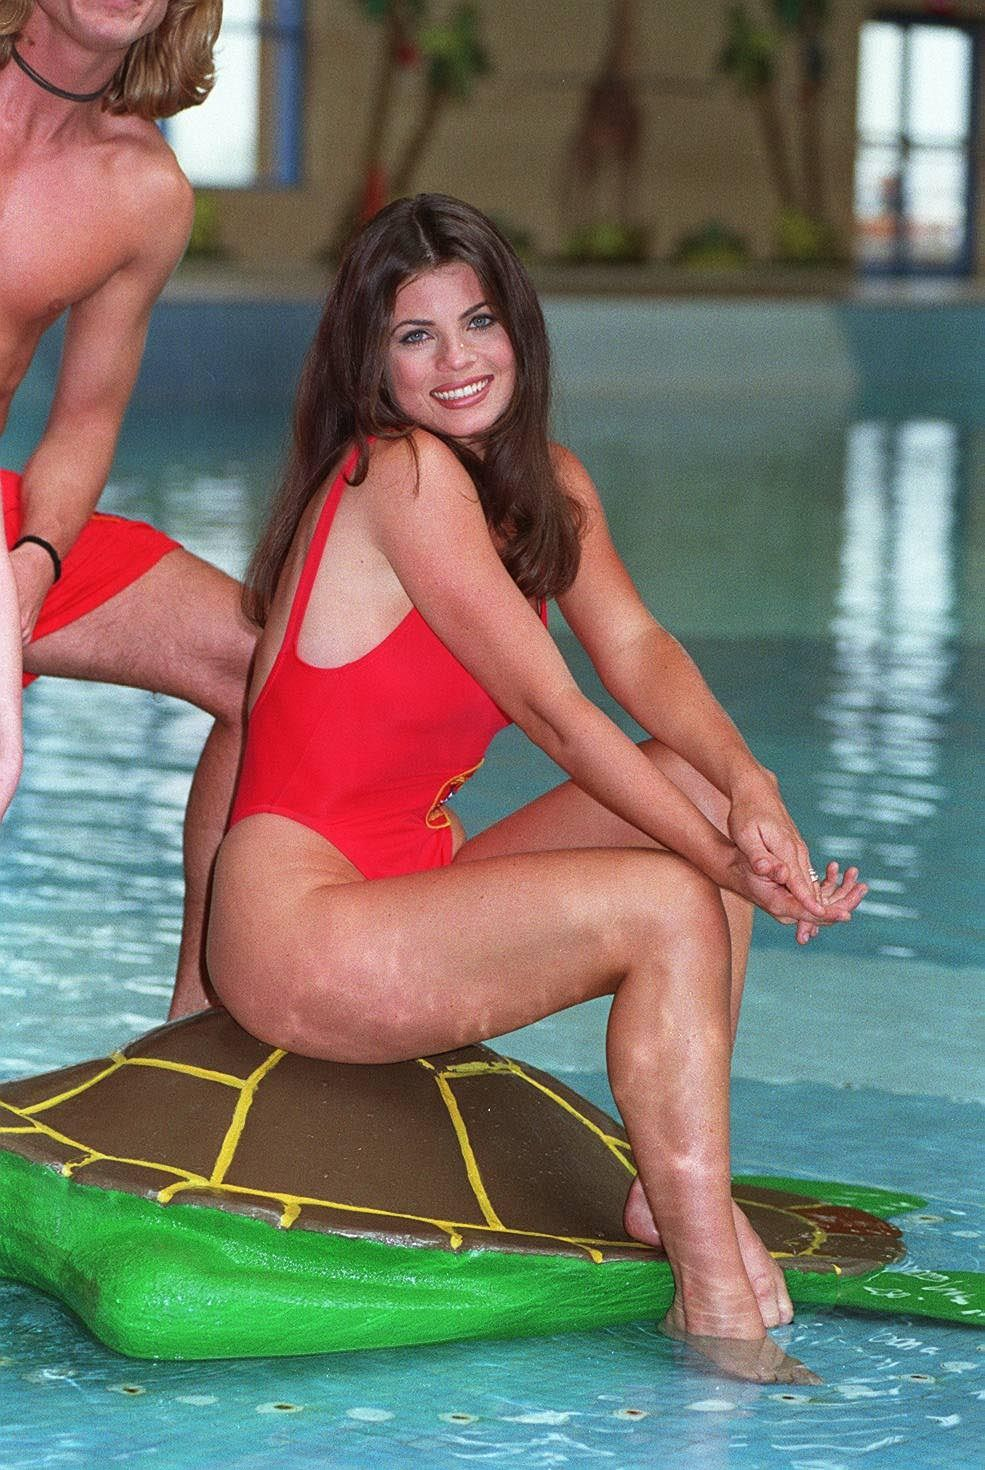 Autographs-original Yasmine Bleeth Actress Caroline In Baywatch Tv Autographed Signed Index Card Selling Well All Over The World Cards & Papers